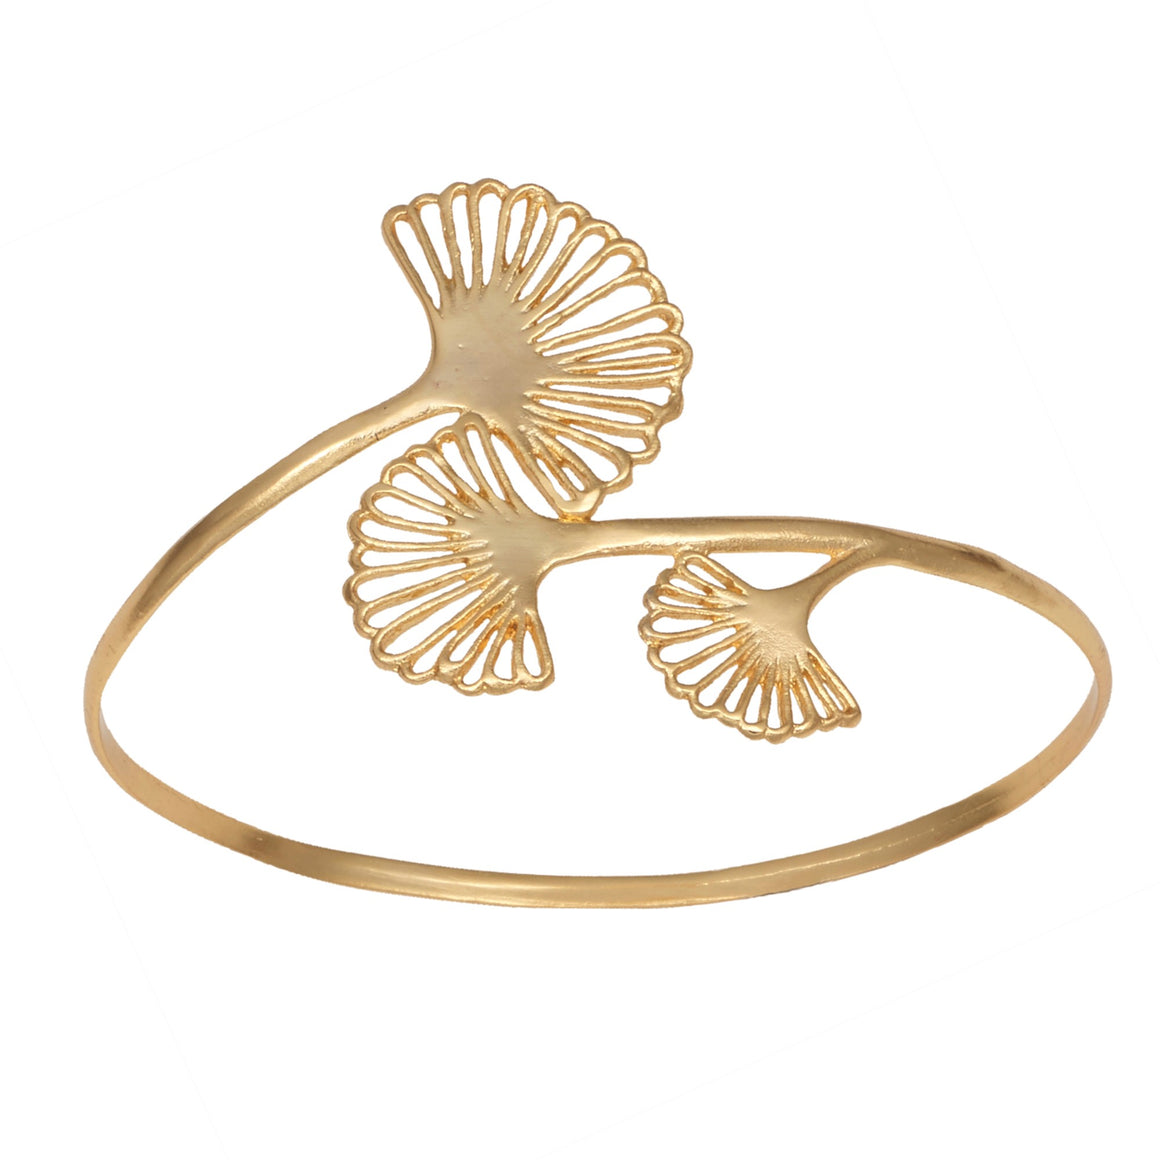 Ginkgo Triple Leaf Bangle Bracelet - 24K Gold Plated